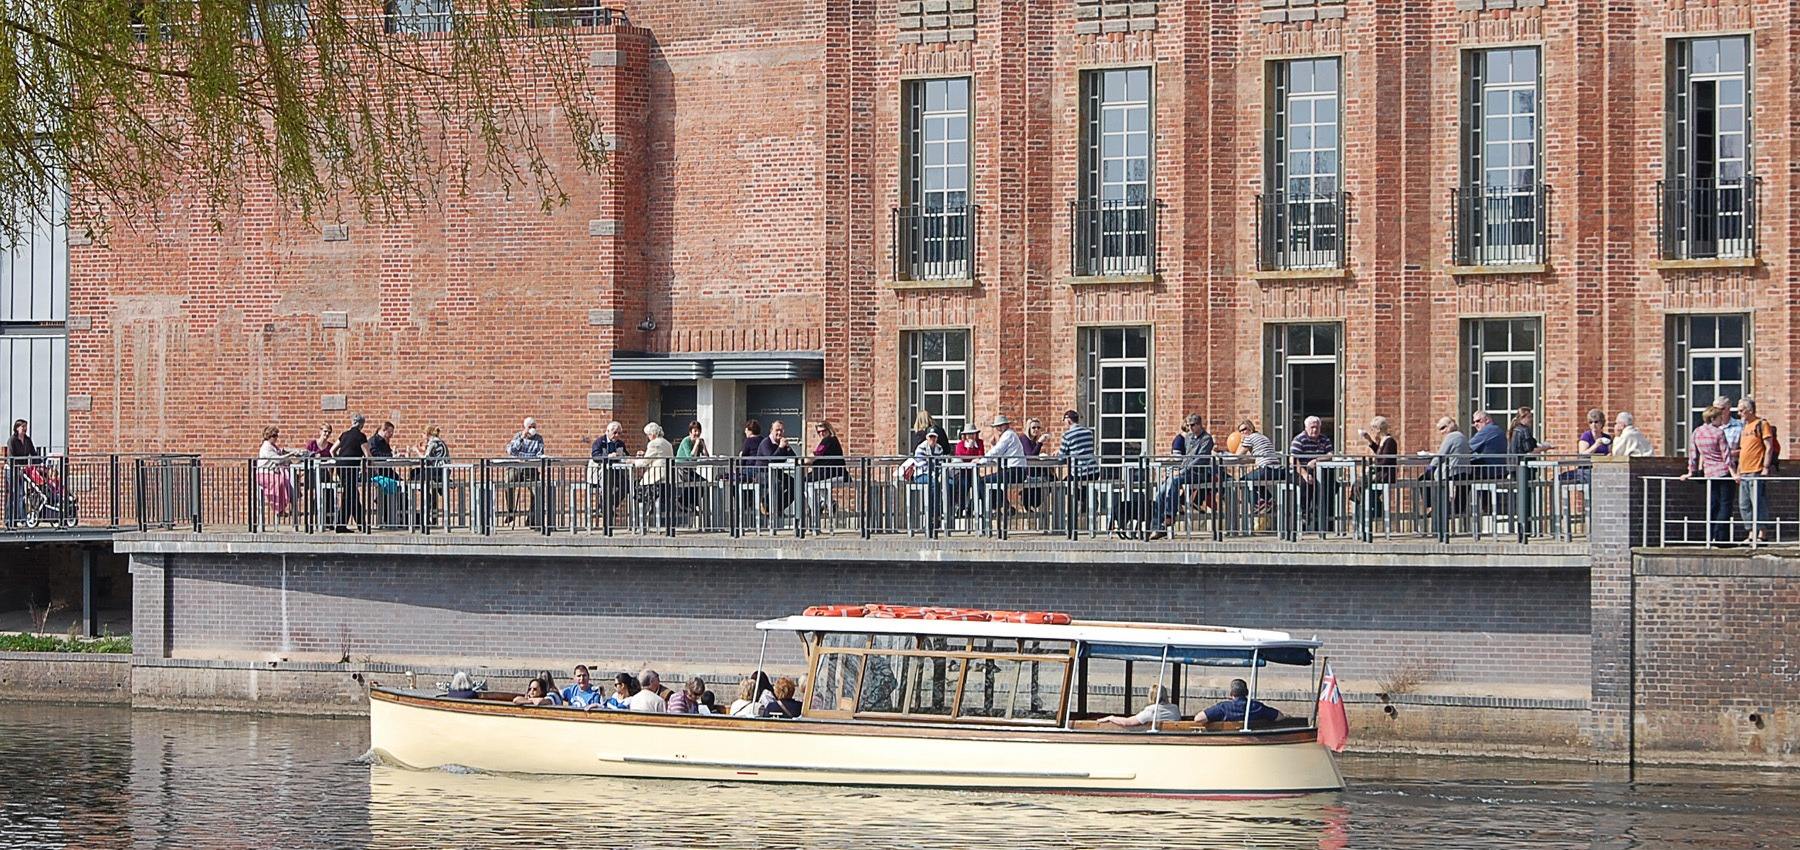 Waterside Cafe at The RSC Stratford